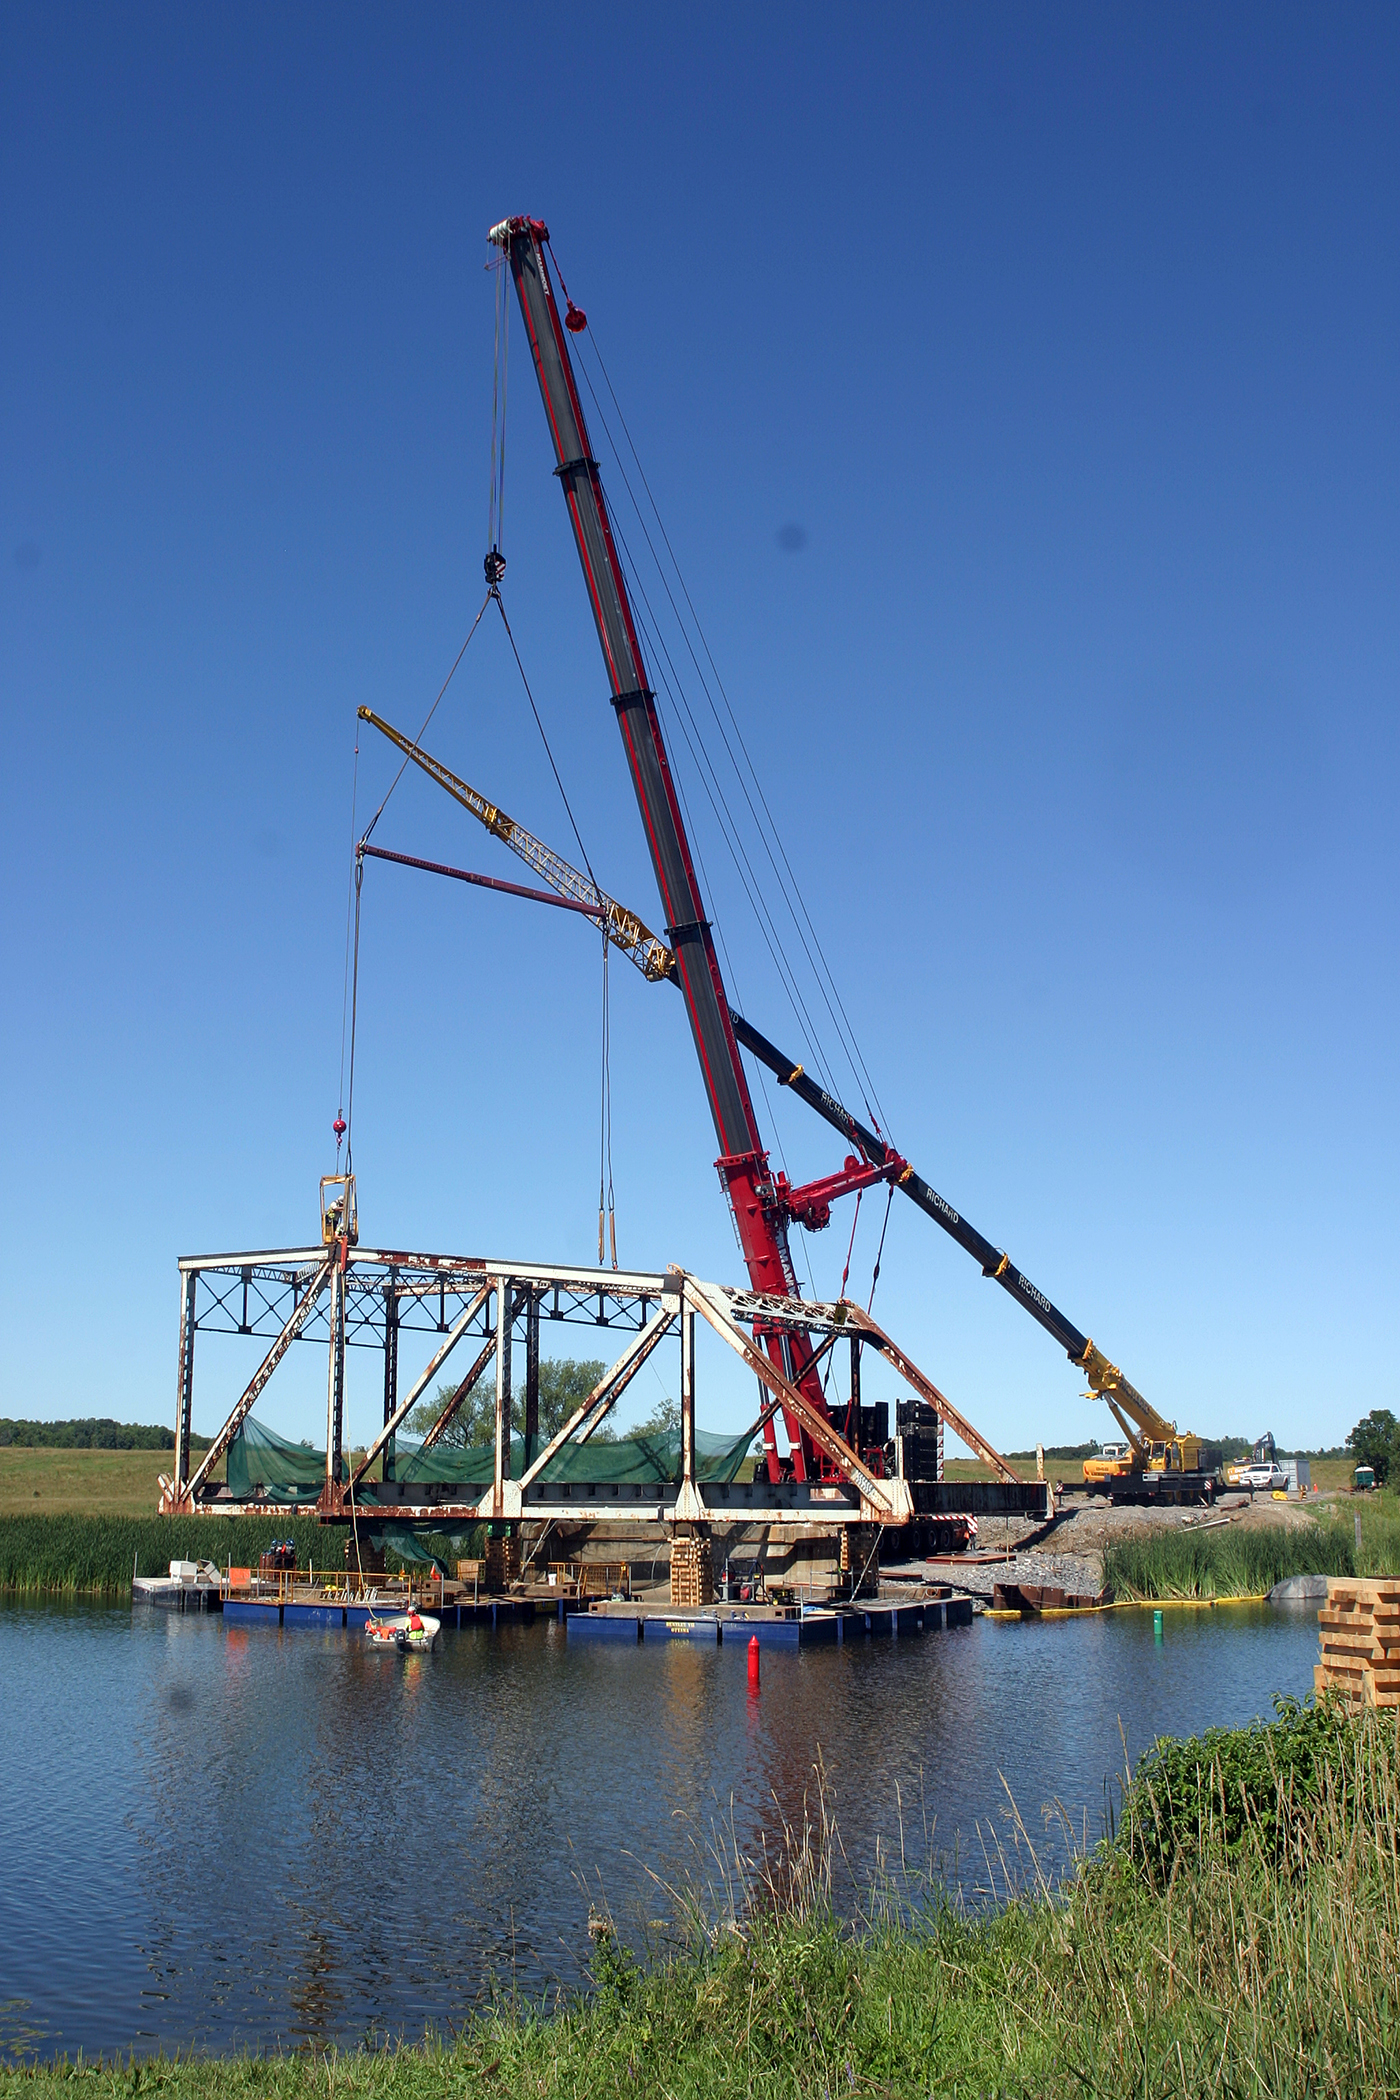 Two large cranes were used in the process including one with a counter-balance of 500 tonnes. Photo by Jake Davies